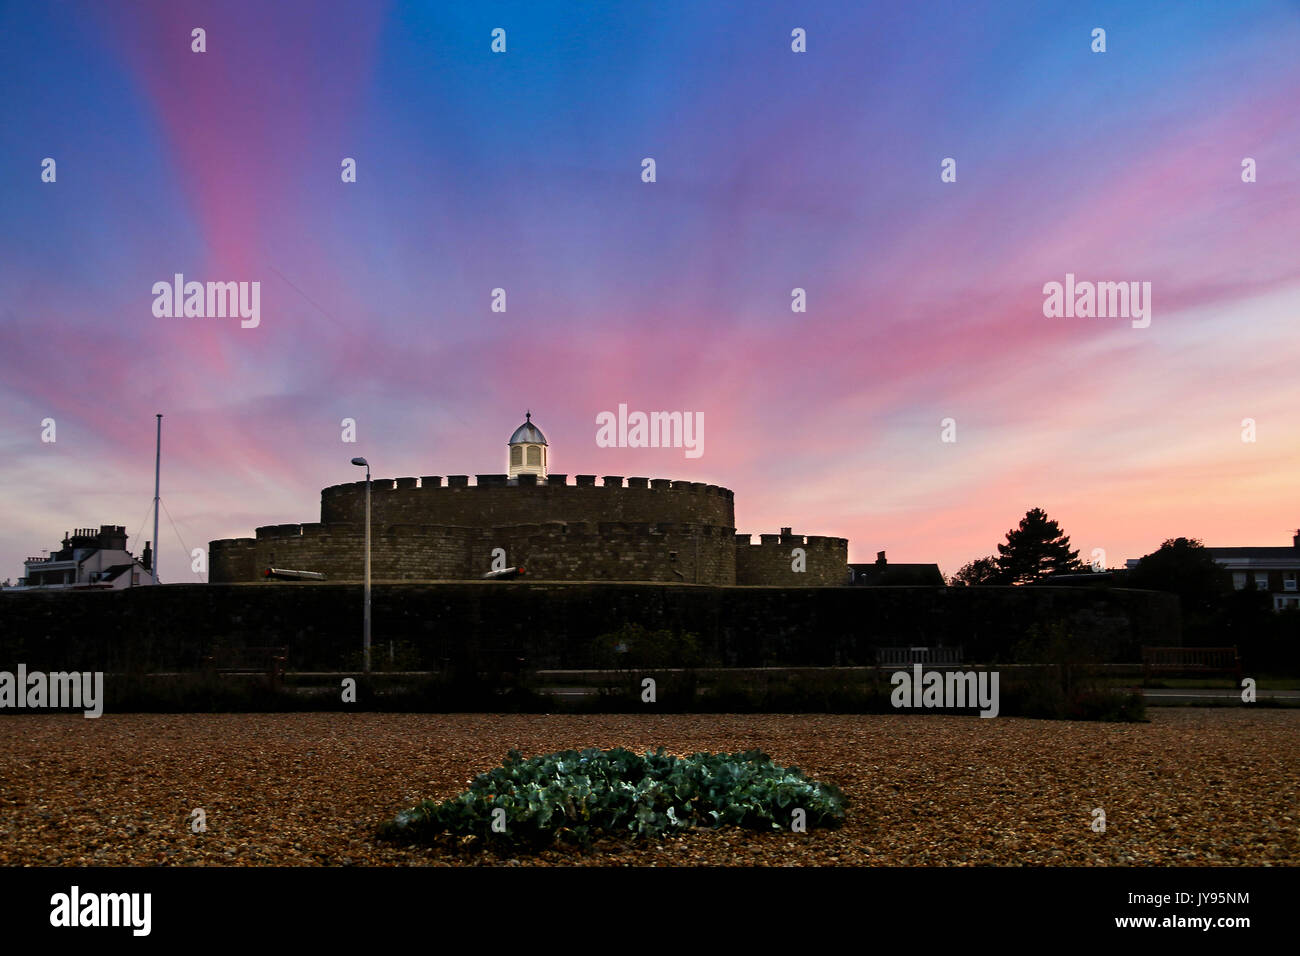 Pink, Purple, Orange and Blue skies over Deal Castle - Stock Image